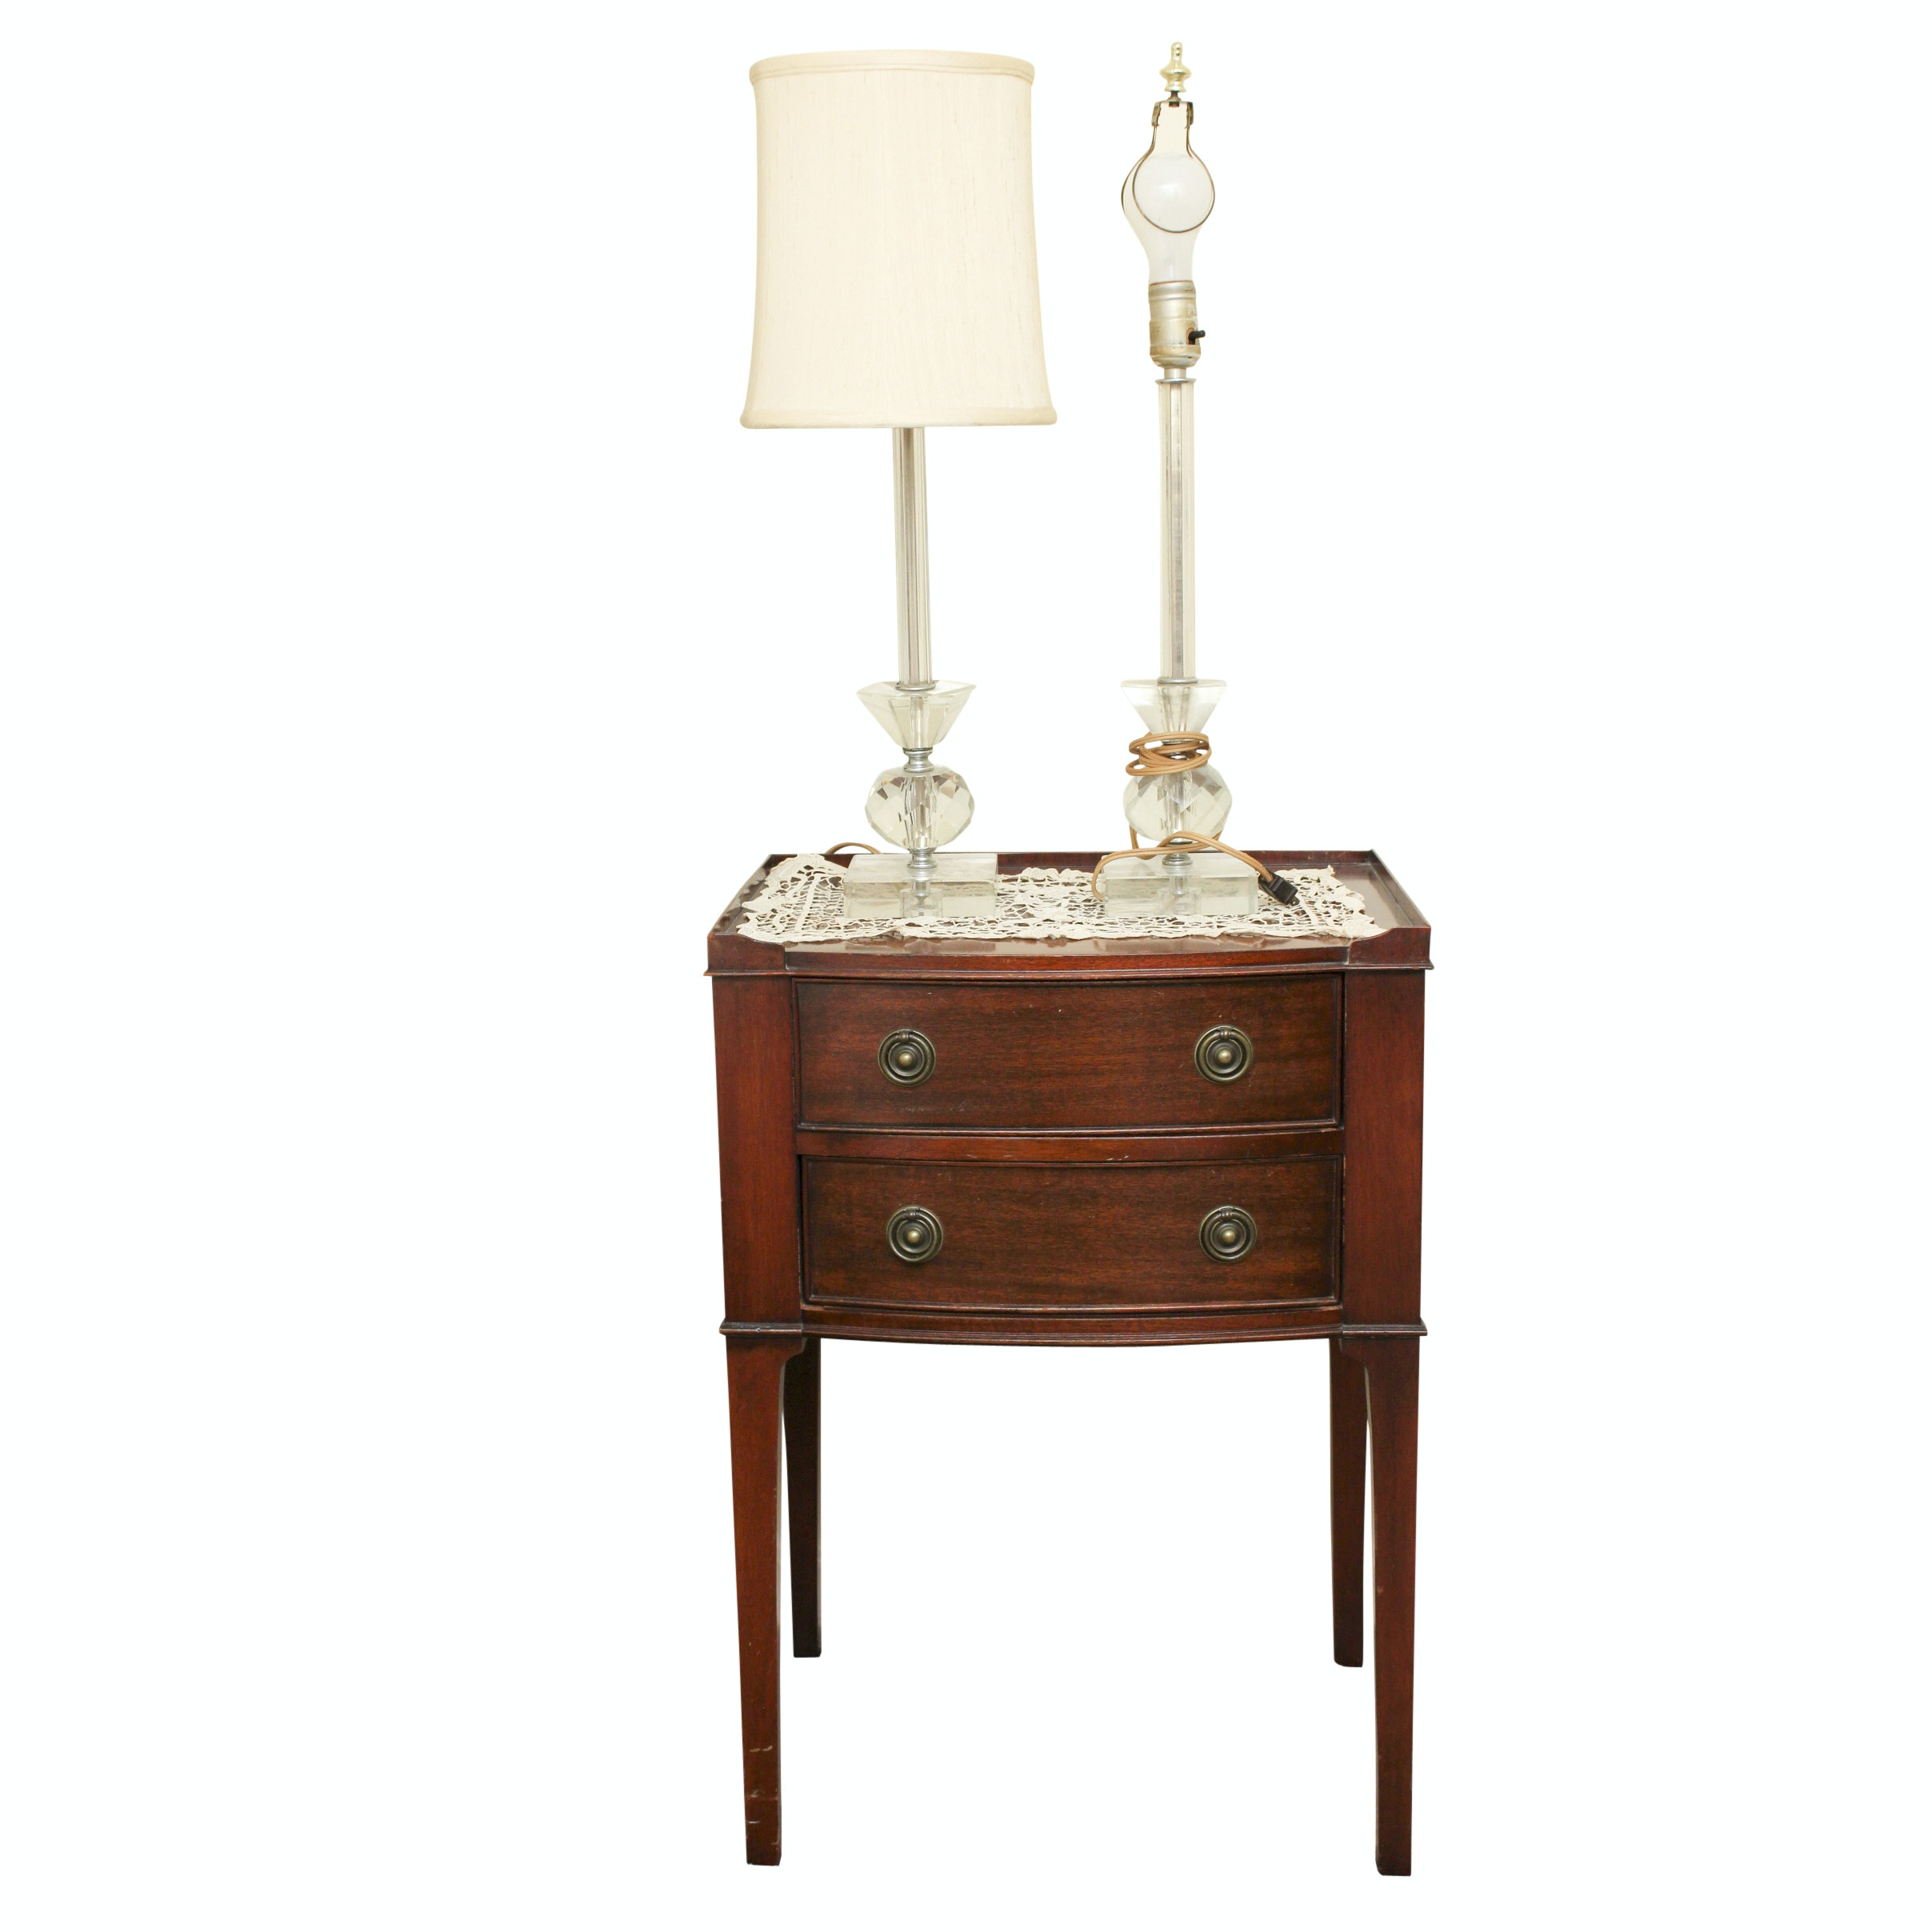 Vintage Mahogany Nightstand, Footstool and Crystal Lamps